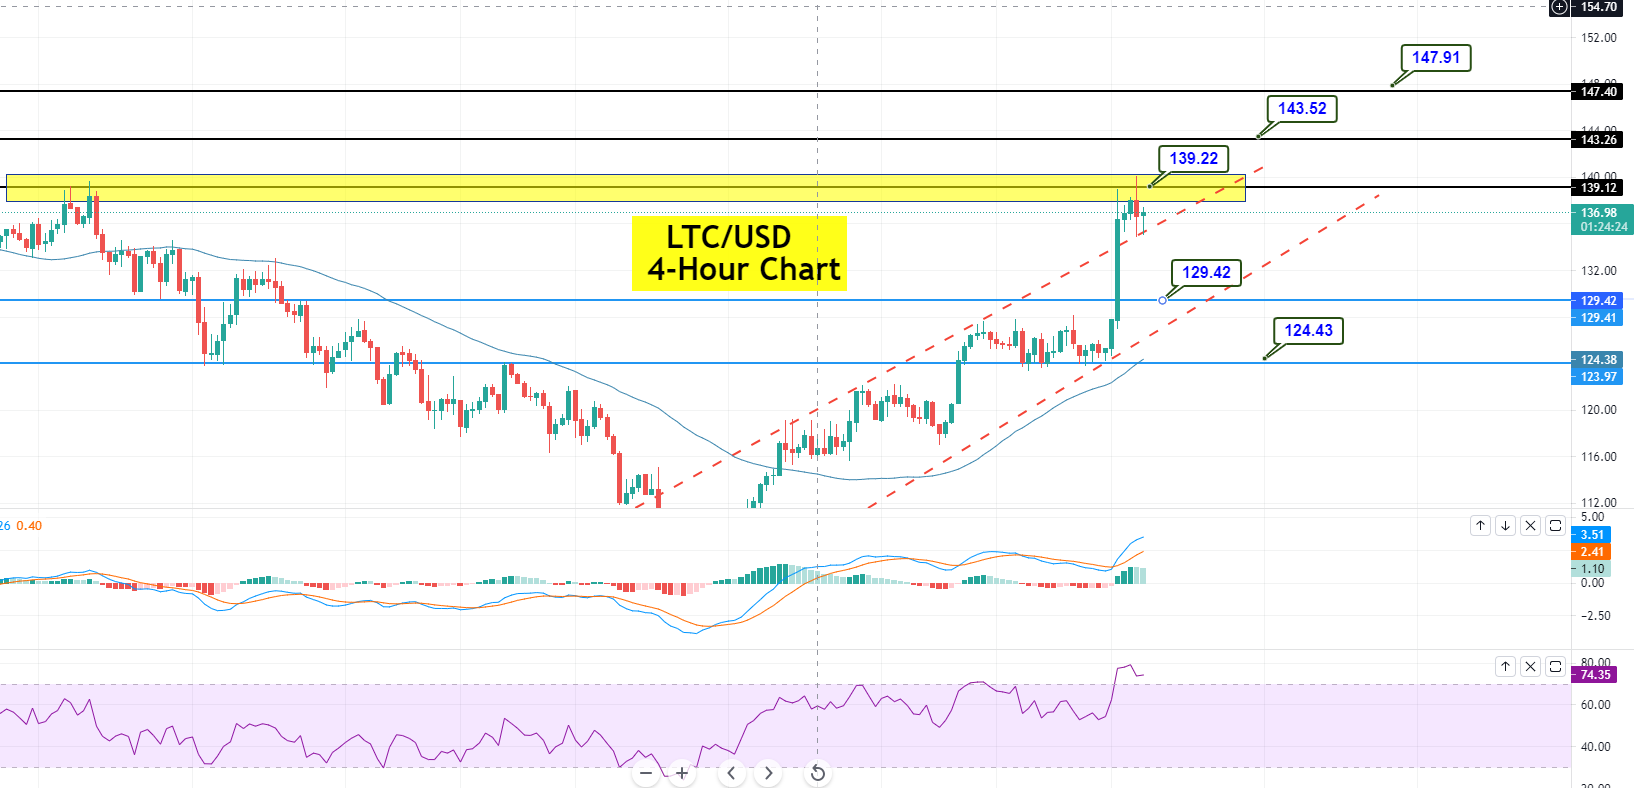 Dramatic Buying in Litecoin (LTC/USD) - Is it Worth Buying Over 139.300? - FX Leaders